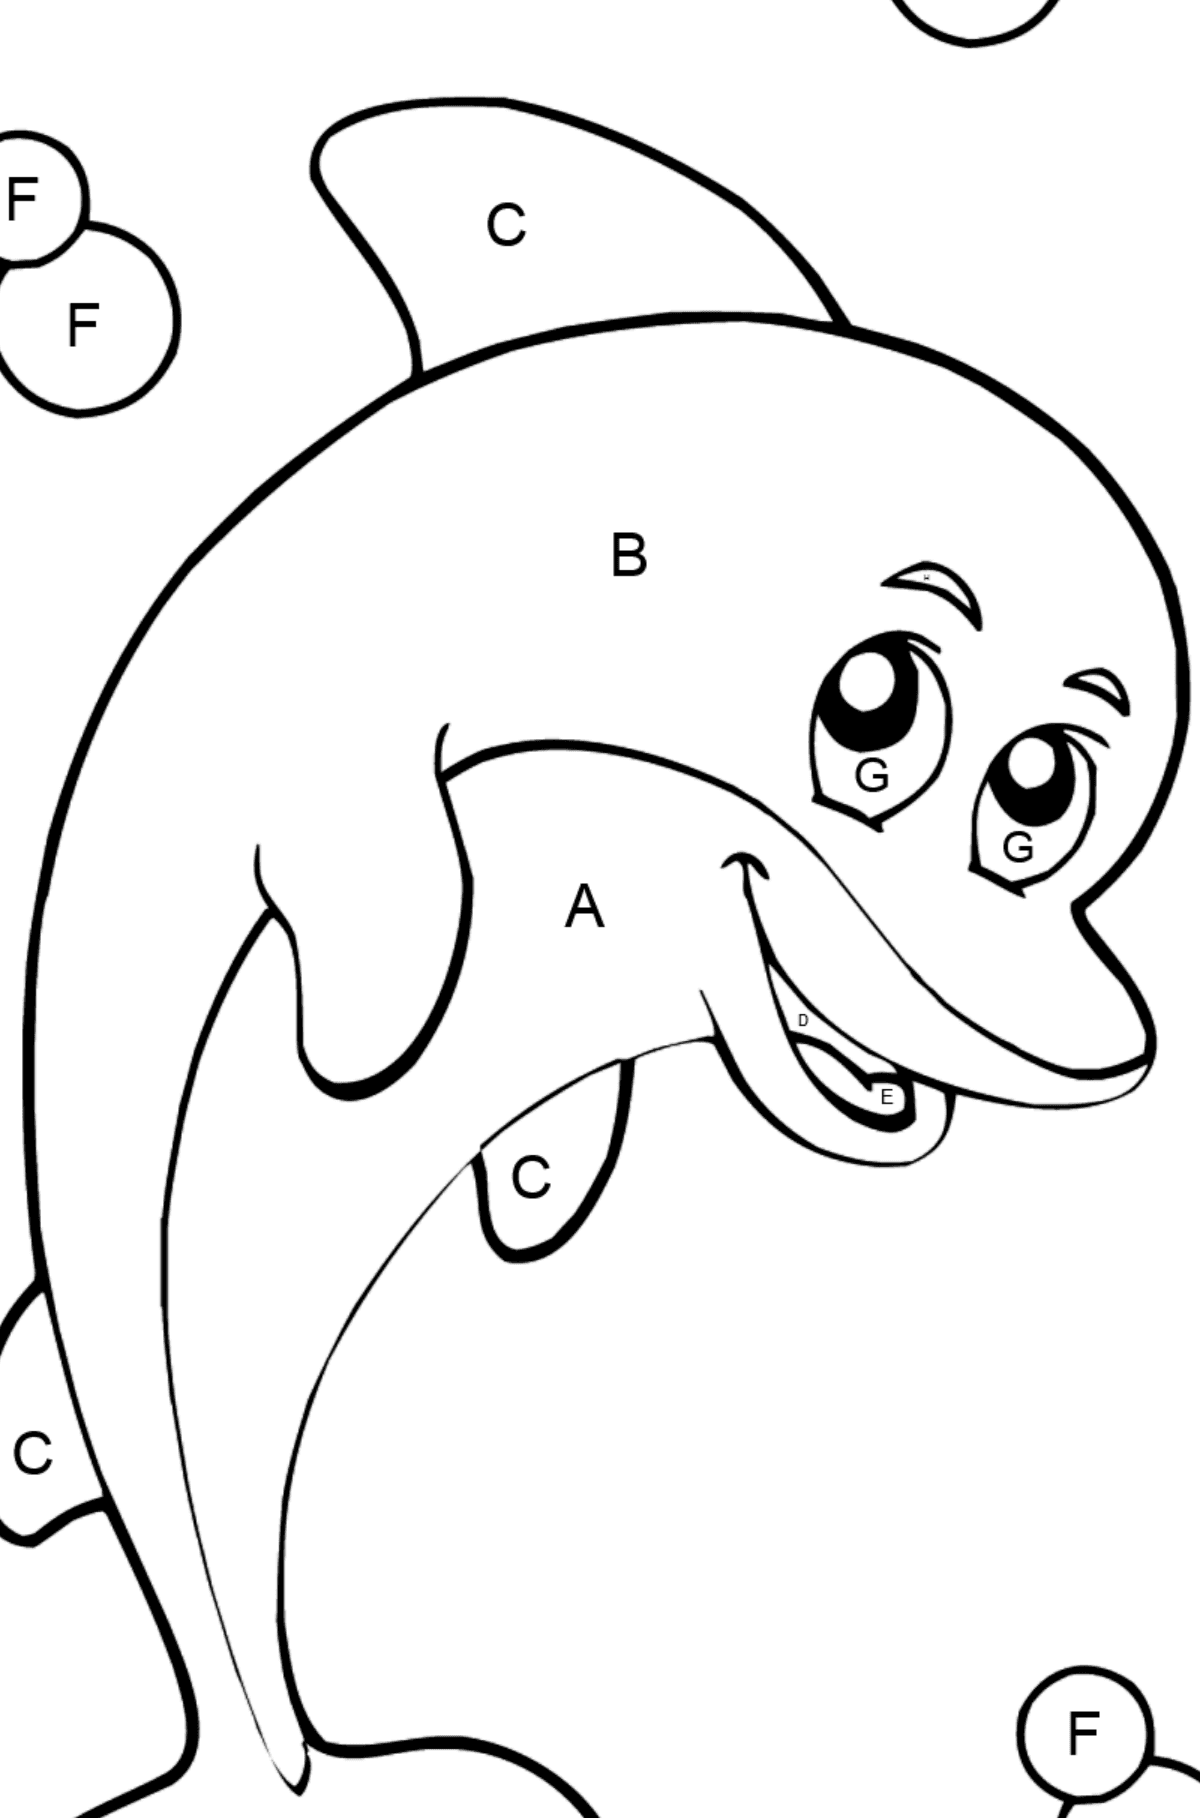 Coloring page with a Cartoon dolphin - Coloring by Letters for Kids